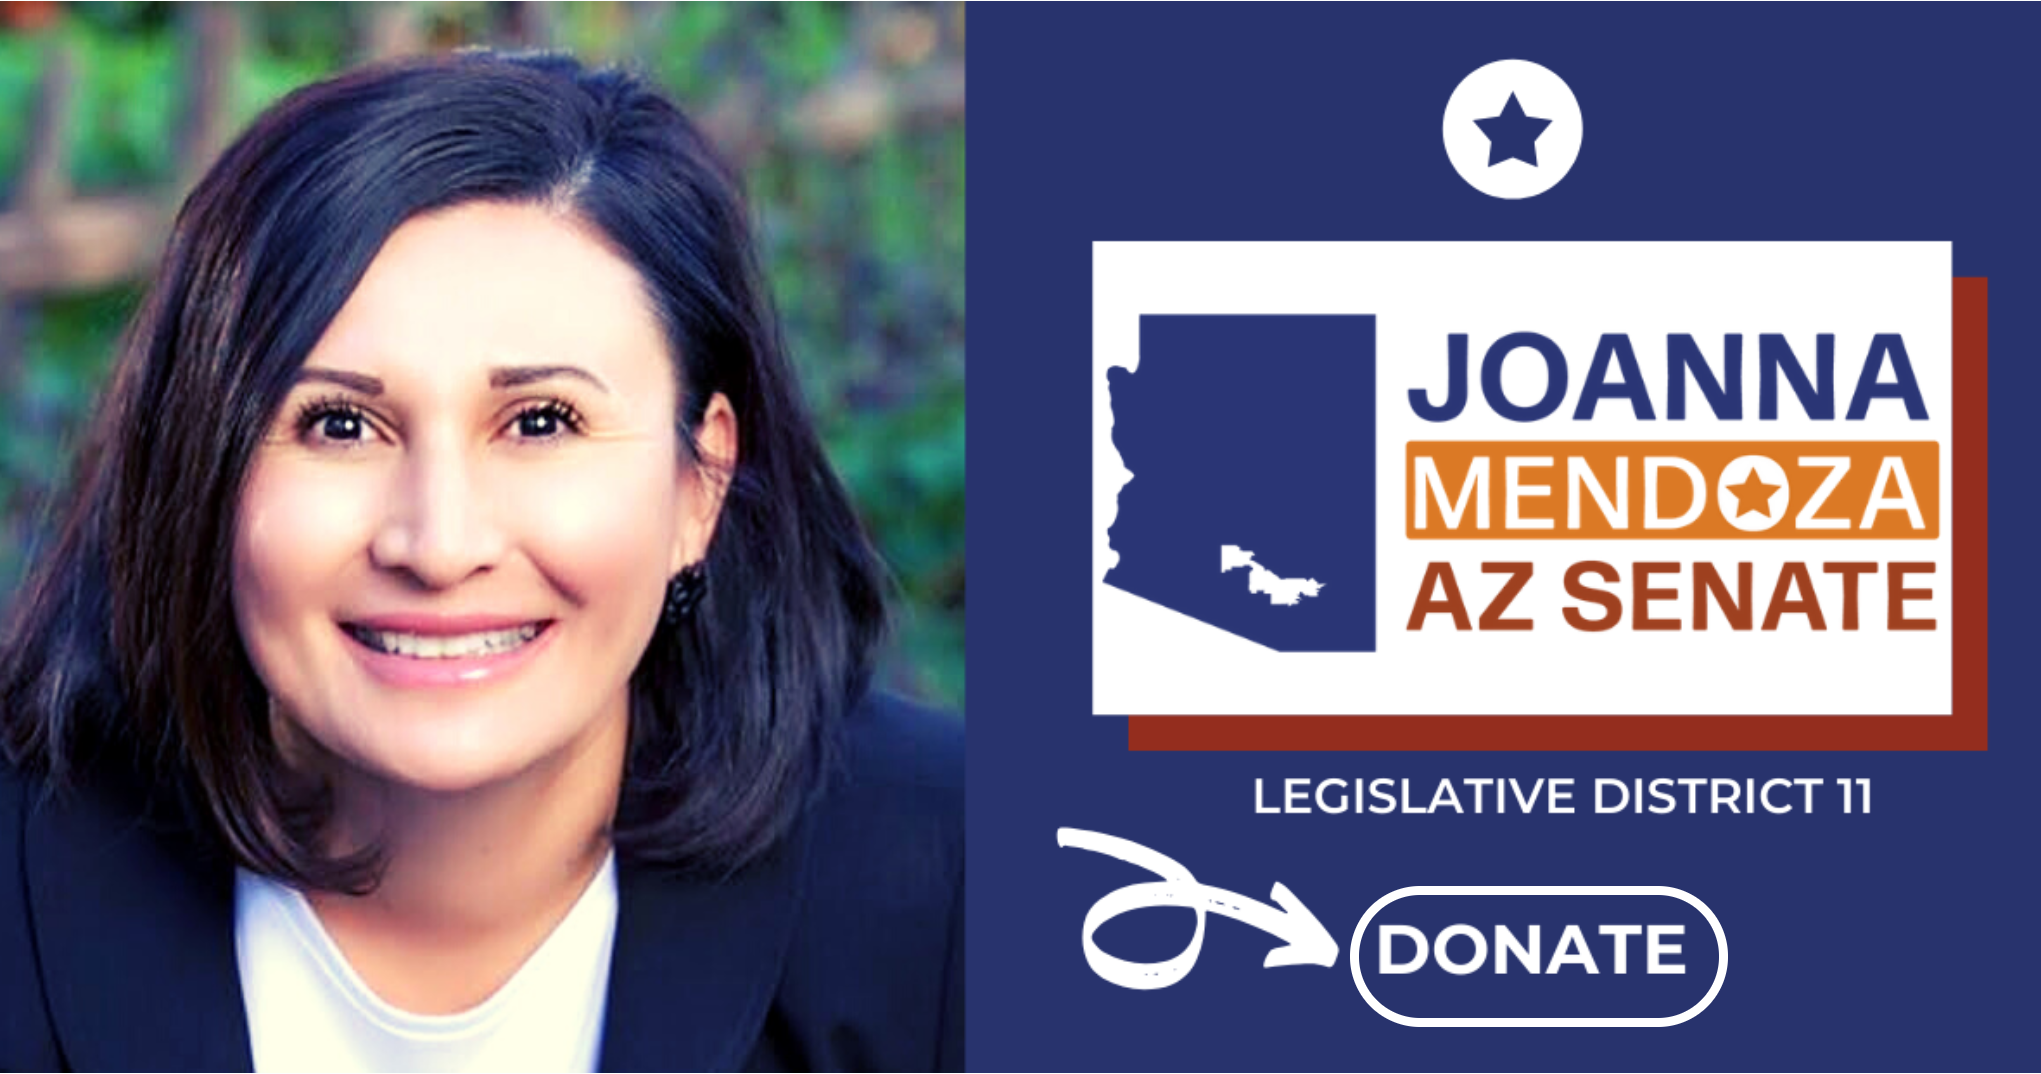 Video: JoAnna Mendoza, Candidate for AZ Senate in LD11